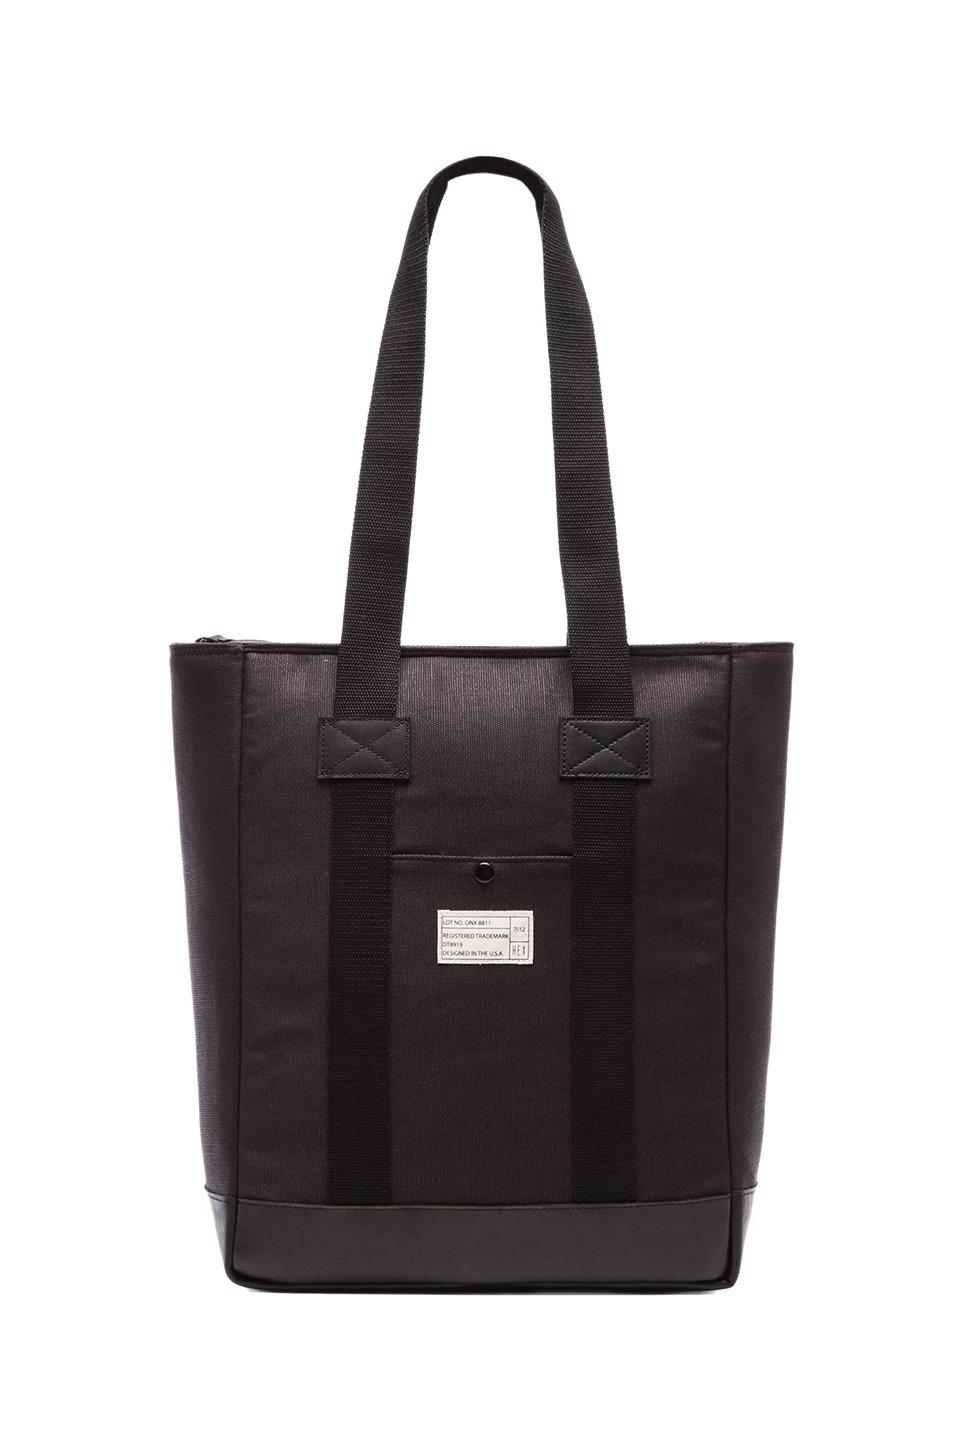 HEX Tote in Black